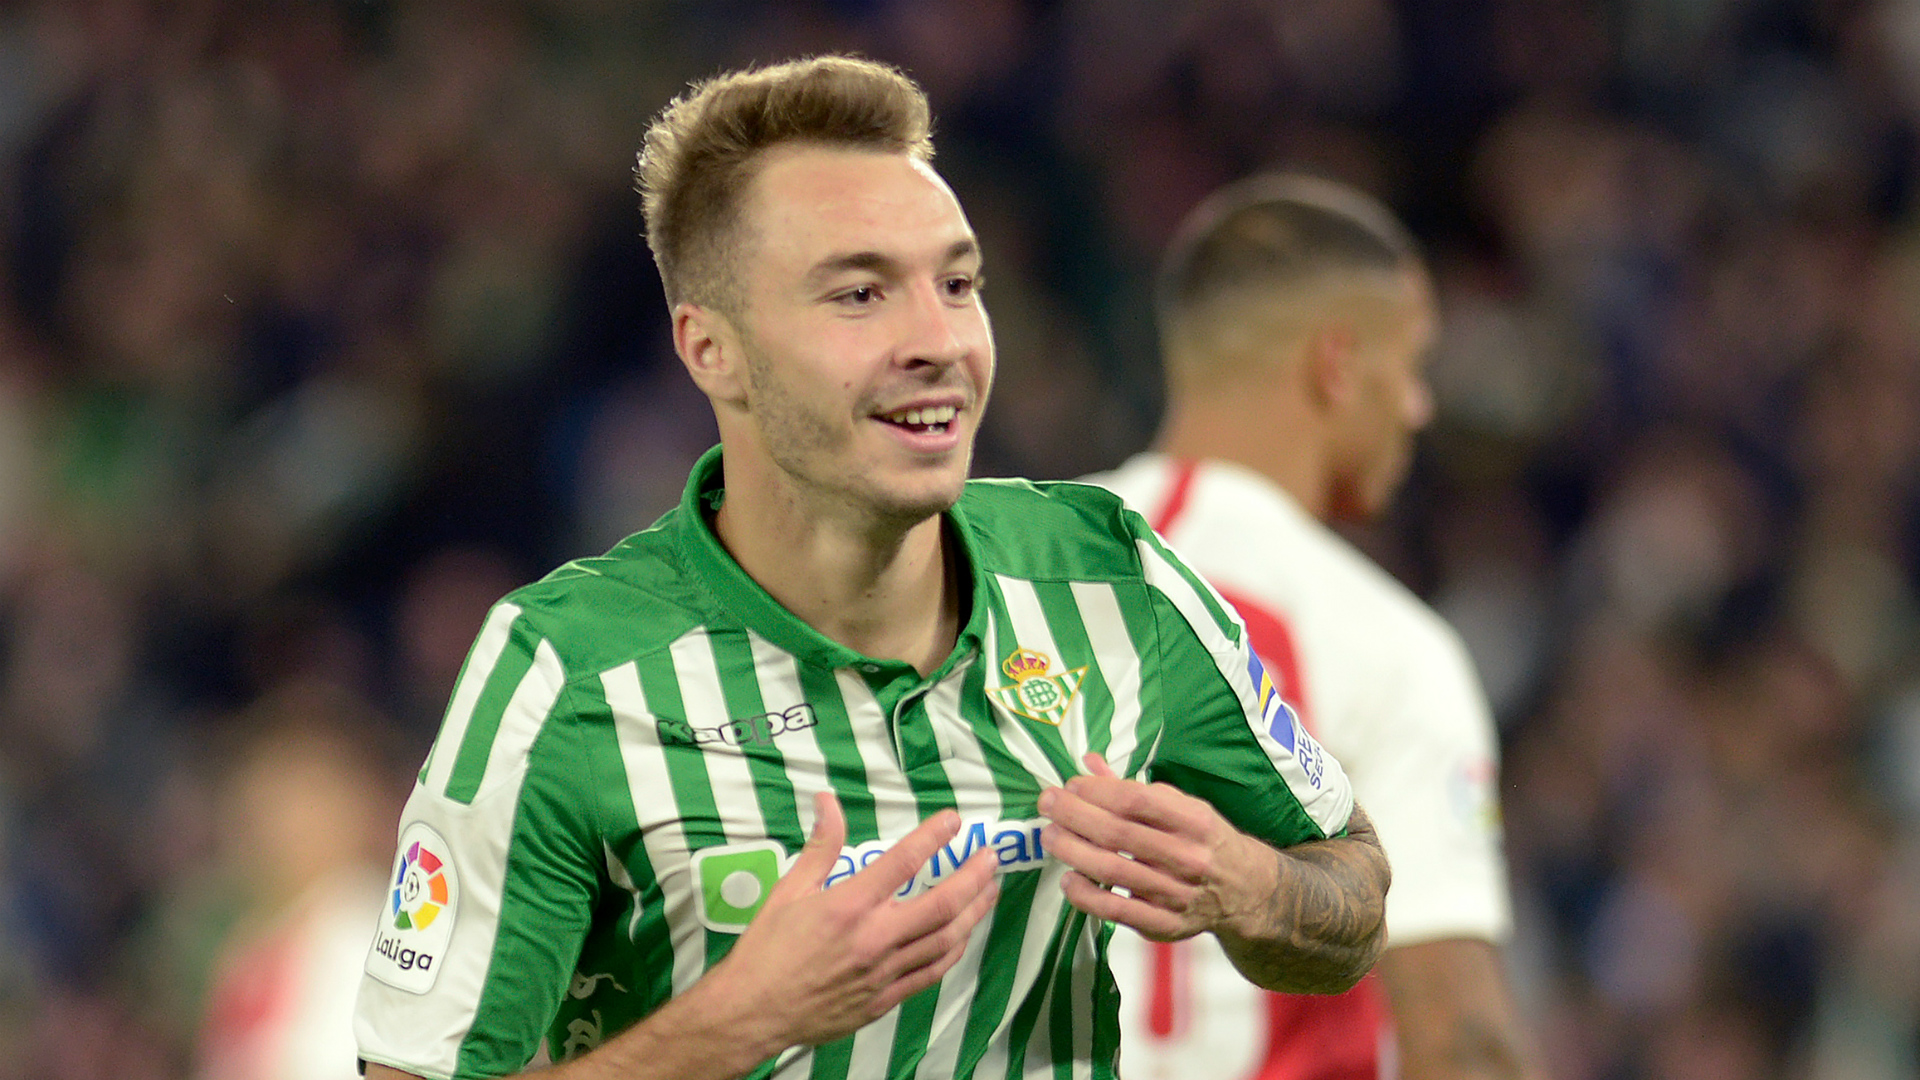 Barcelona have asked about Loren but he's not leaving, say Betis ...